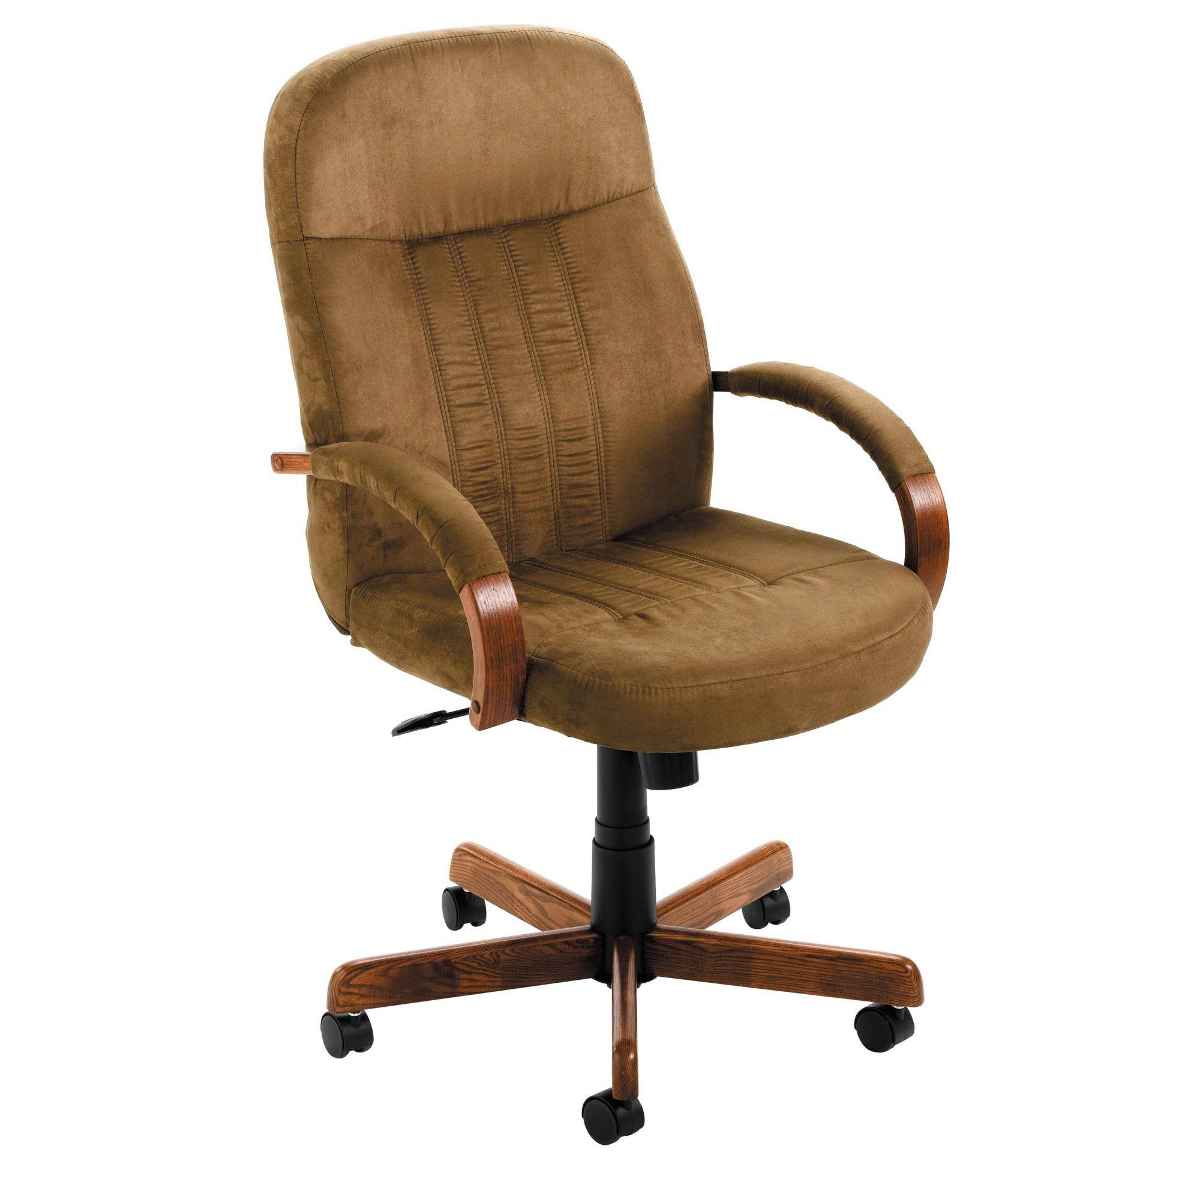 Microfiber Workplace Chair Office